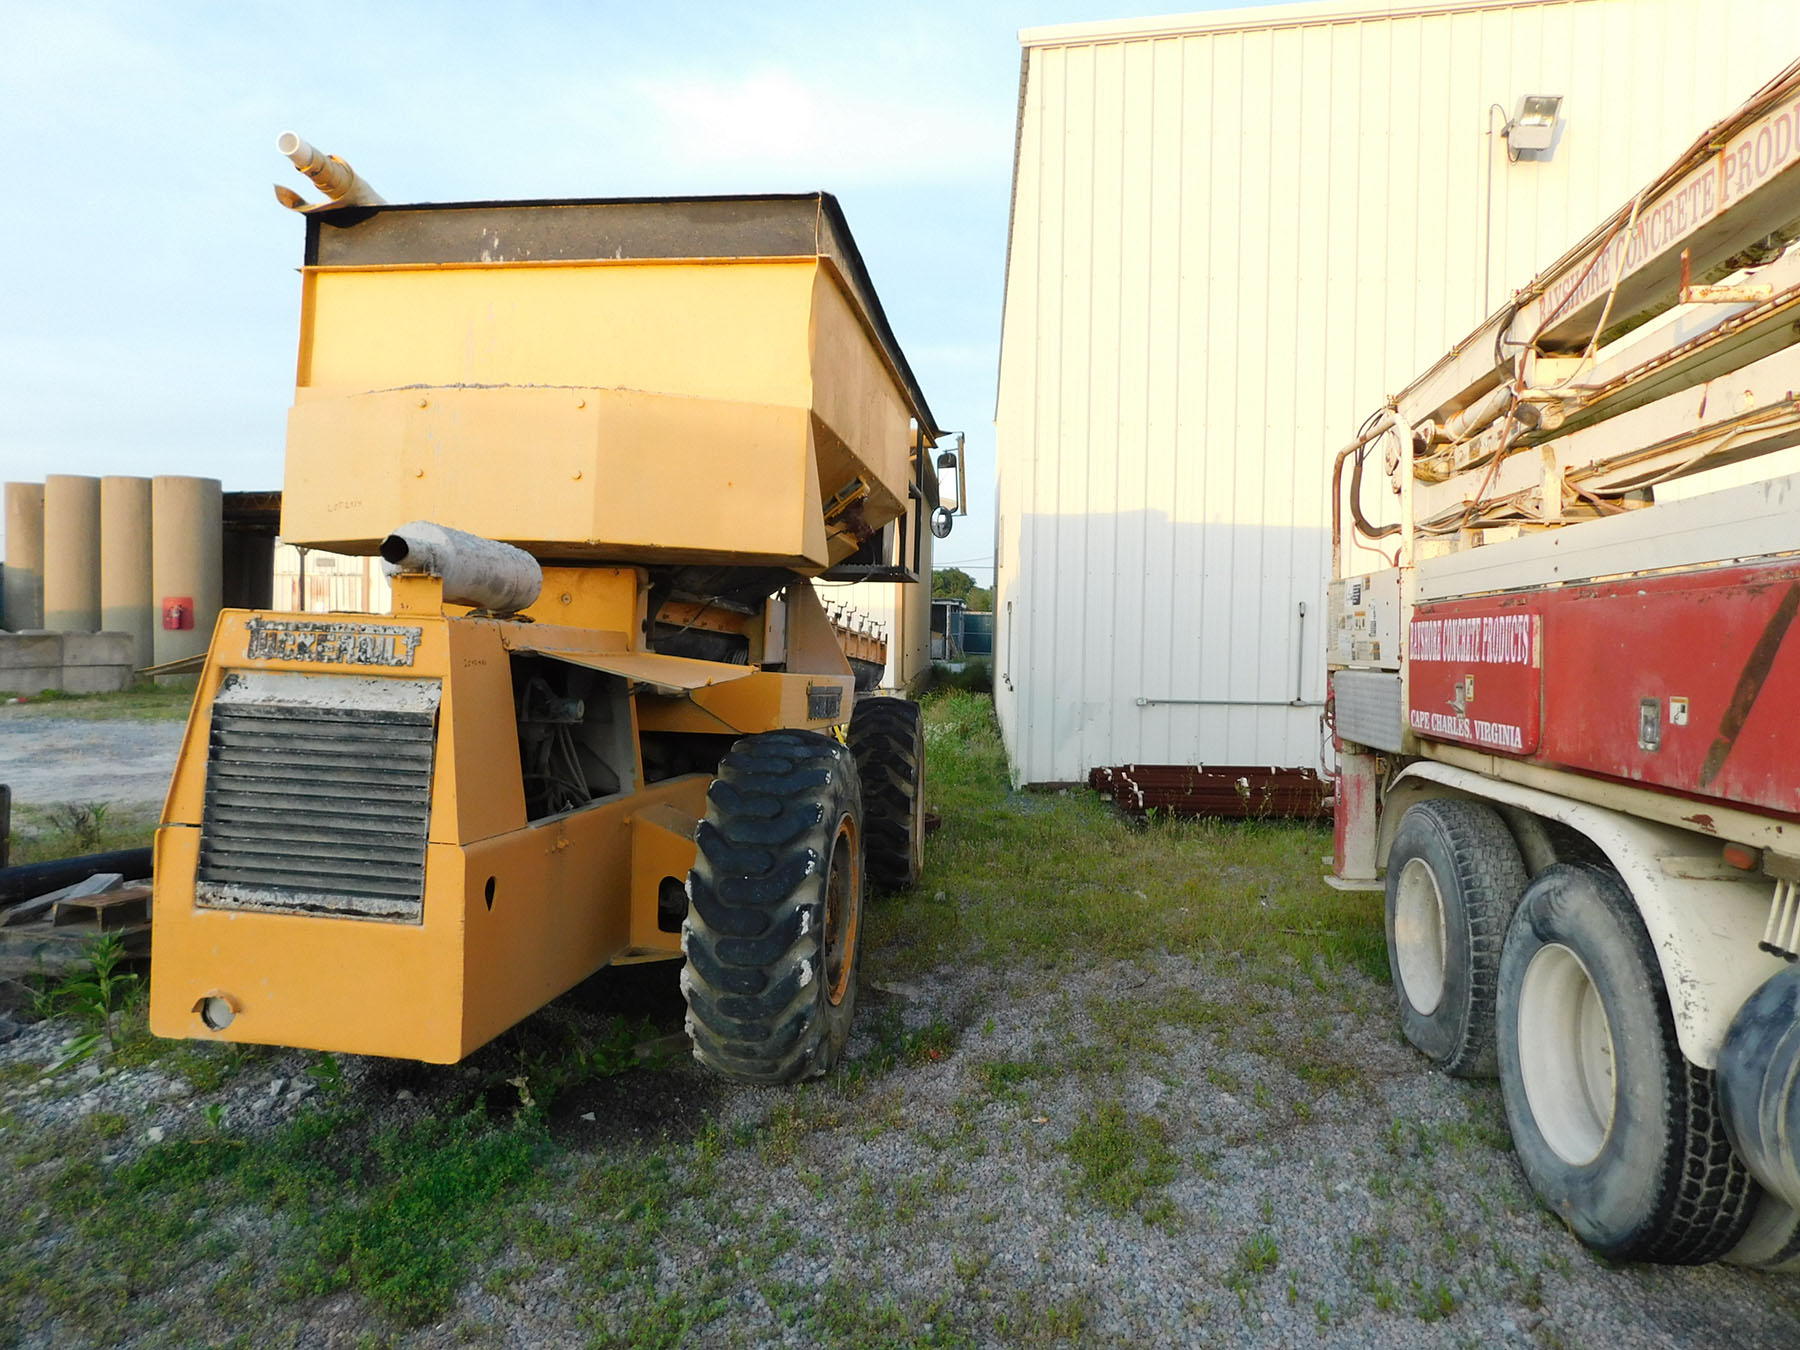 Lot 2414 - TUCKER BILT T630 CONCRETE TRANSPORT VEHICLE 6-YARD HOPPER, HYDRAULIC SWING, 3 SPEED AUGER, DIESEL